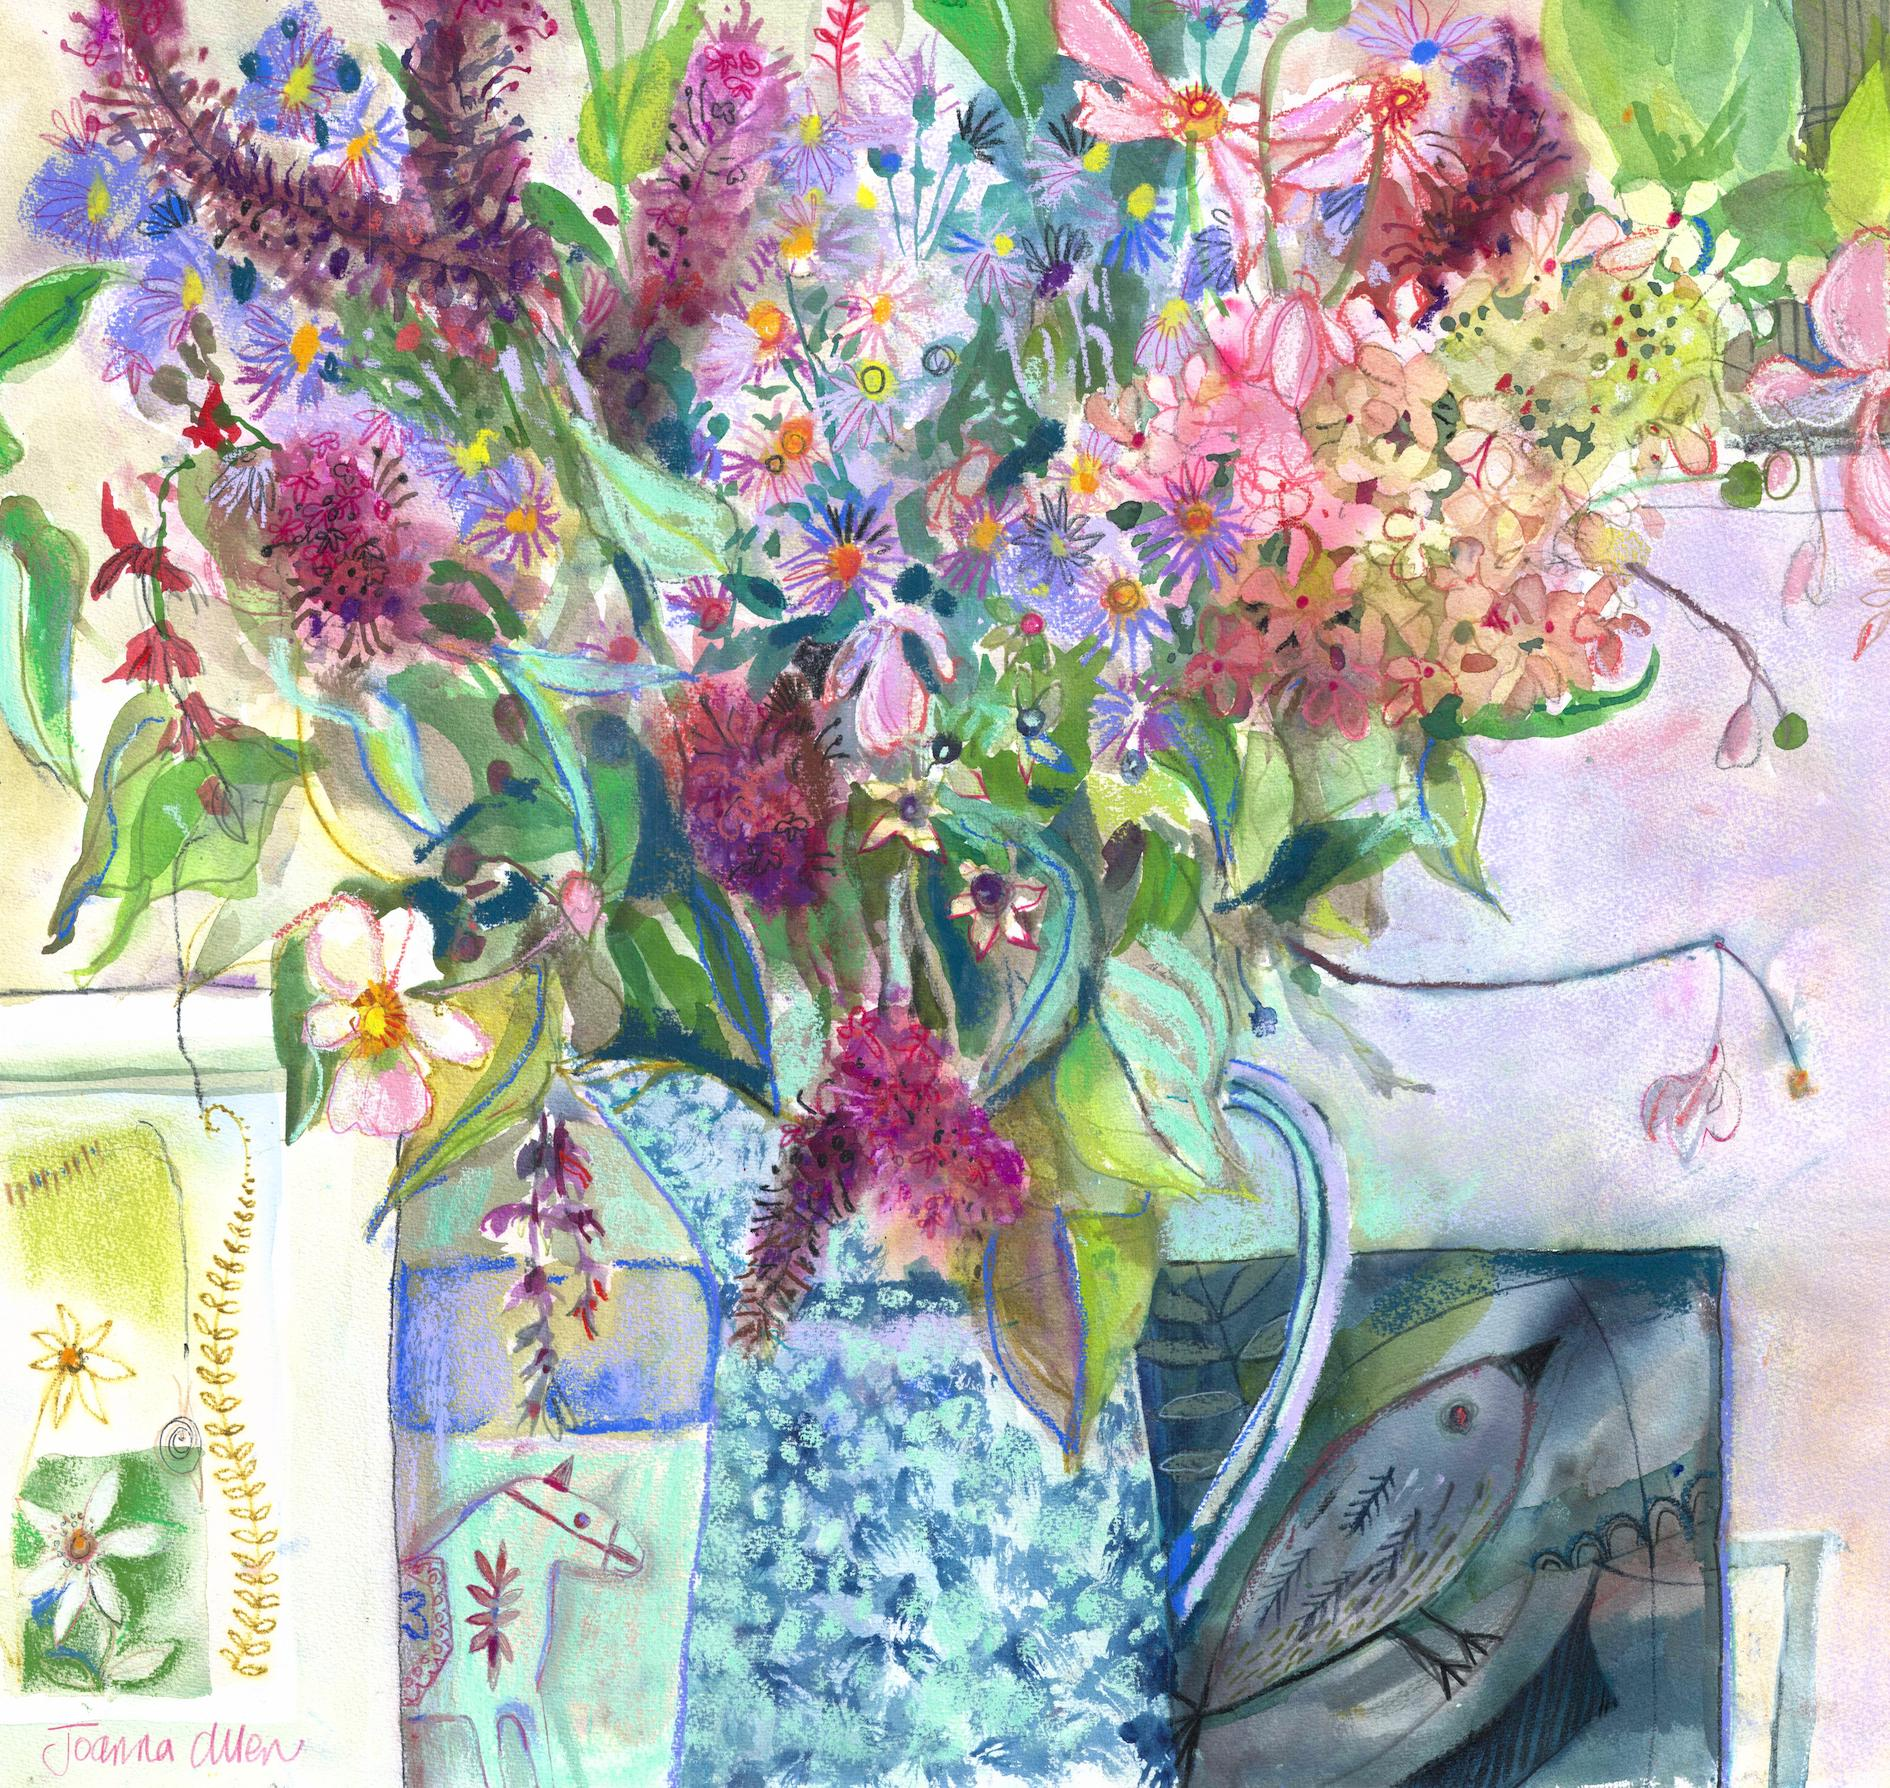 Allen_Joanna HEDGEBIRD BOUQUET mixed media 80 x 90 cms_06.jpg